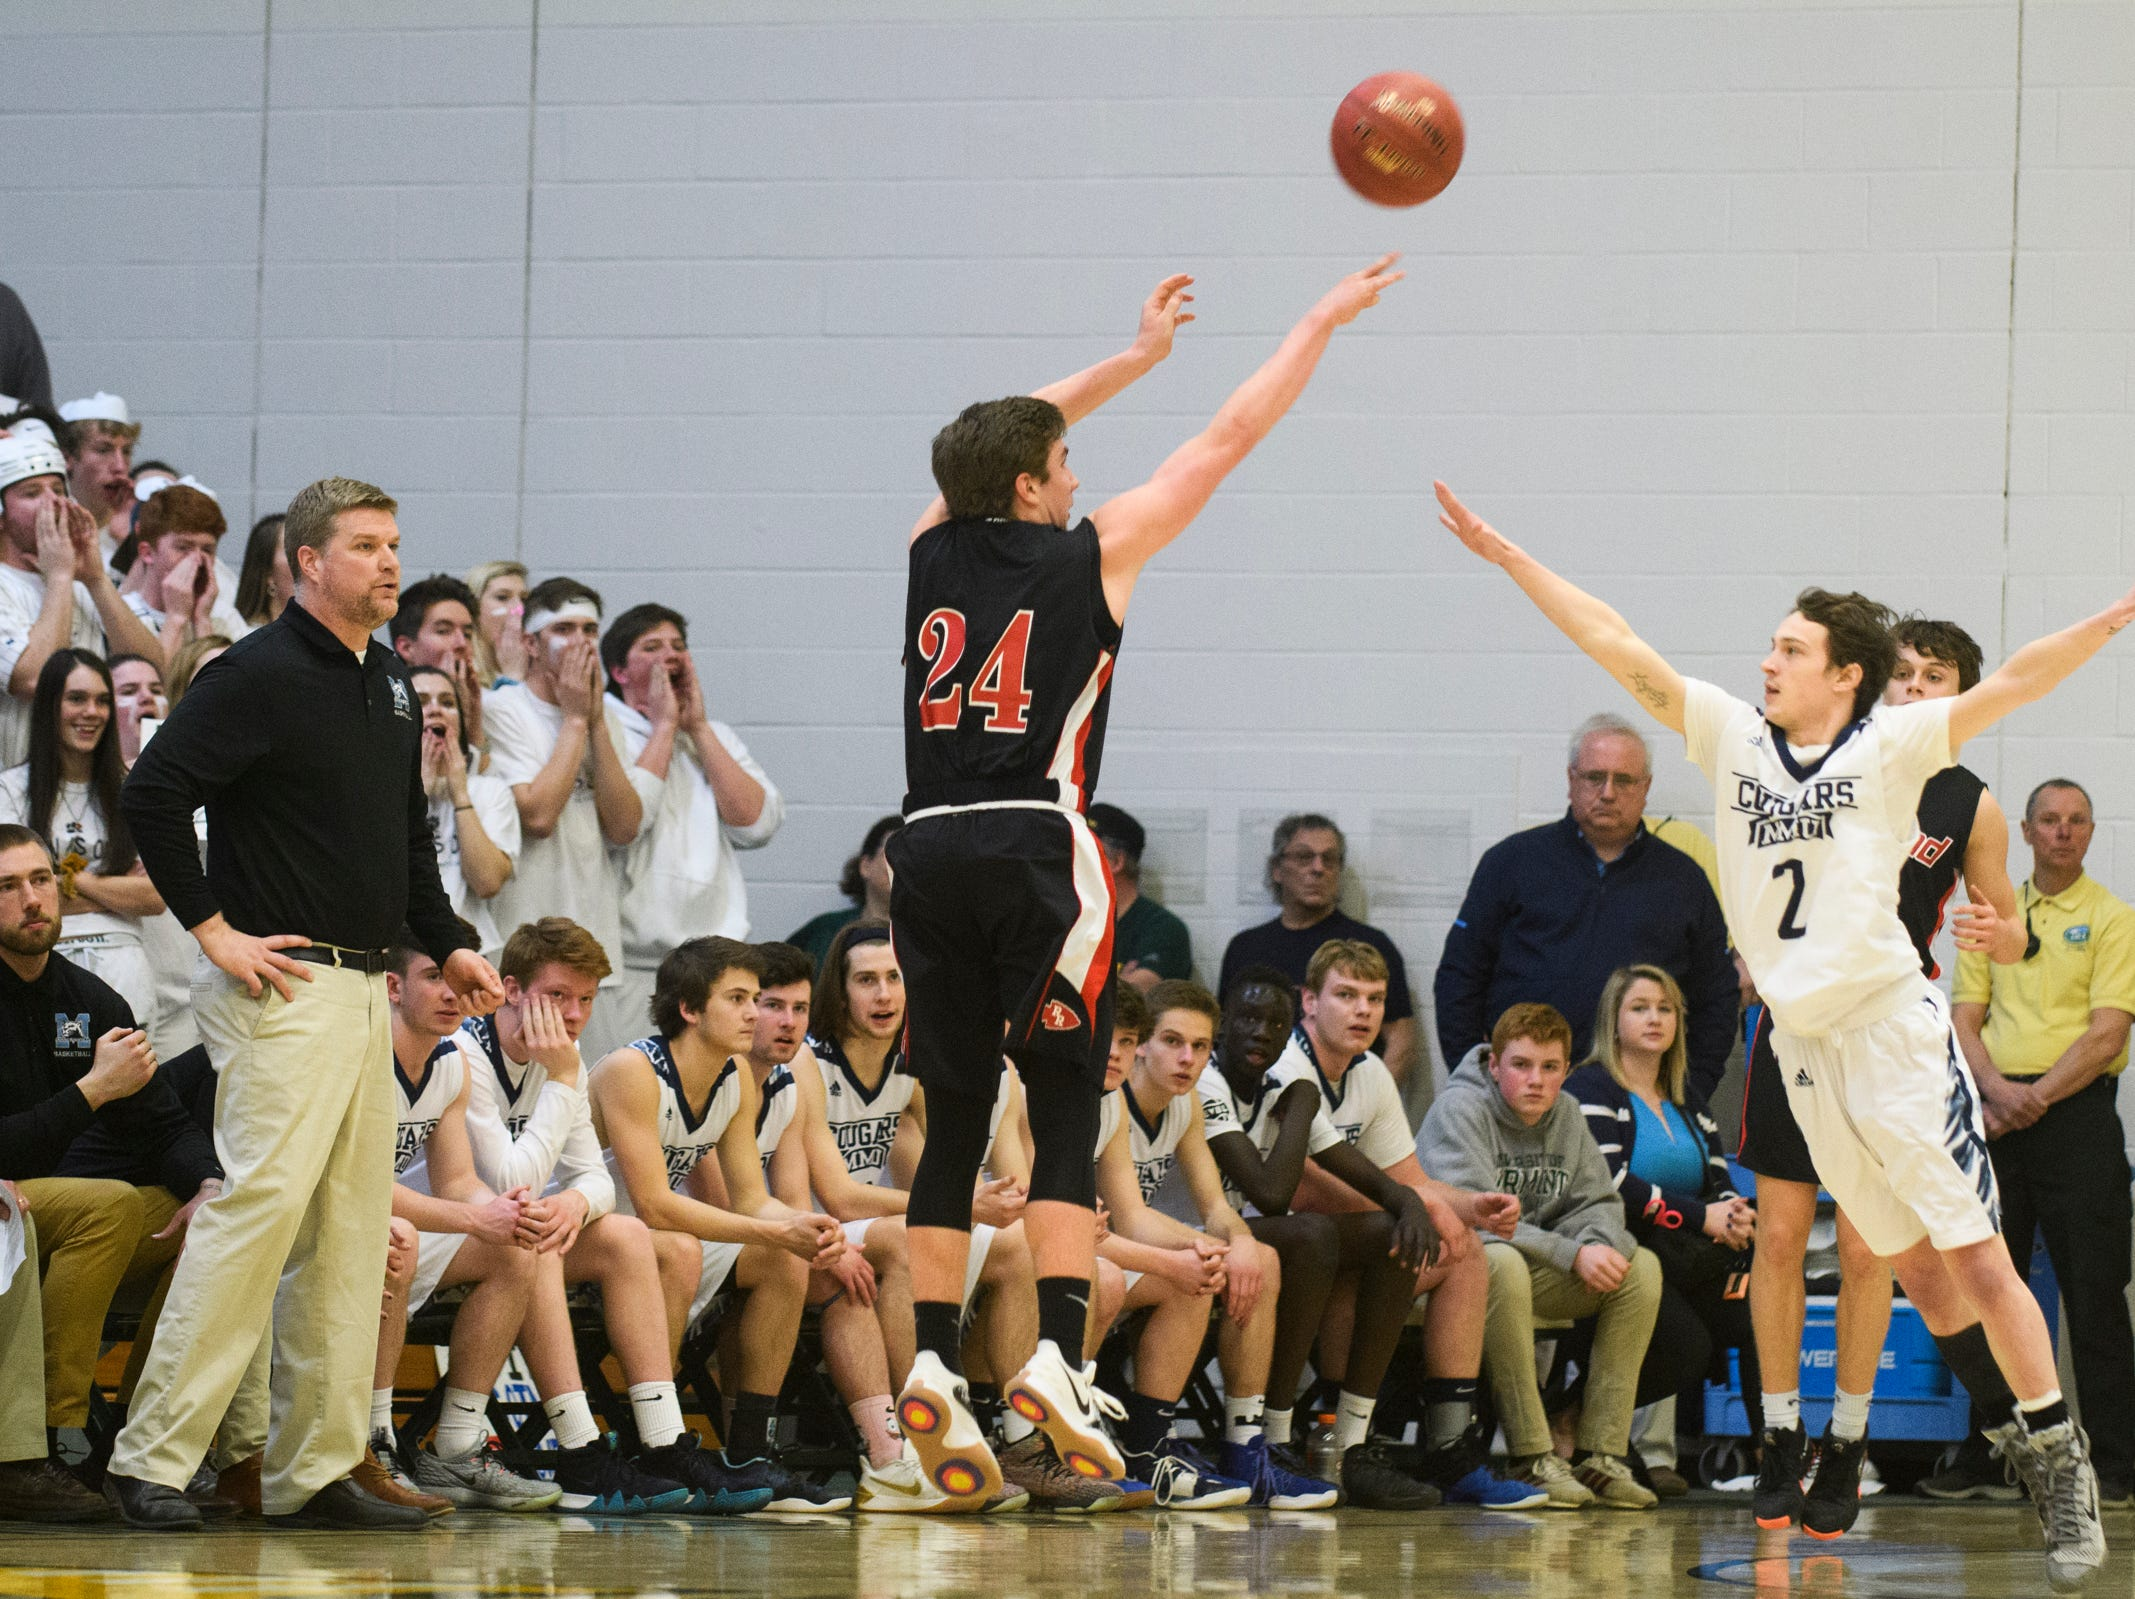 Rutland's Jacob Lorman (24) shoots a three pointer during the boys DI semi final basketball game between the Rutland Raiders and the Mount Mansfield Cougars at Patrick Gym on Monday night March 11, 2019 in Burlington, Vermont.